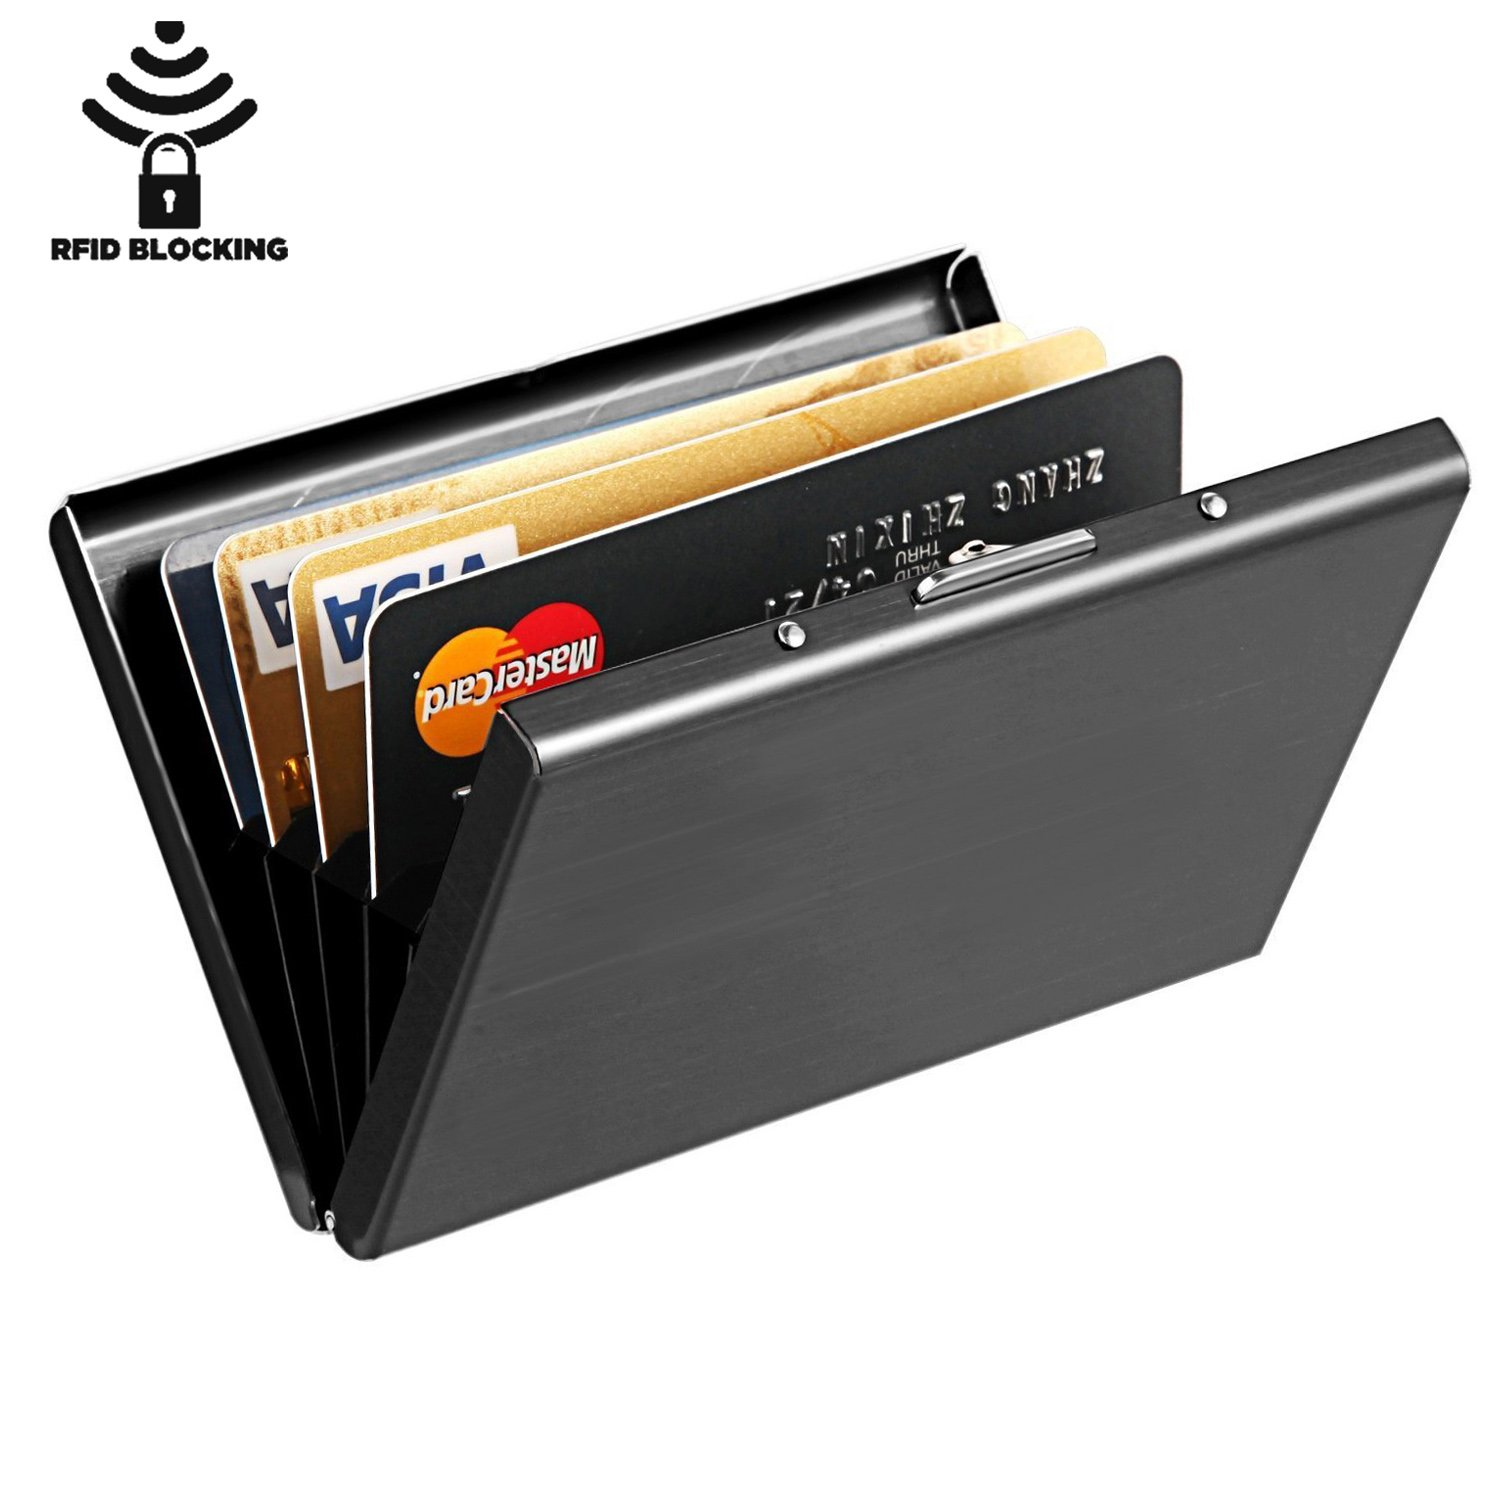 Amazon.com: Maxgear Stainless Steel RFID Credit Card Holder for ...